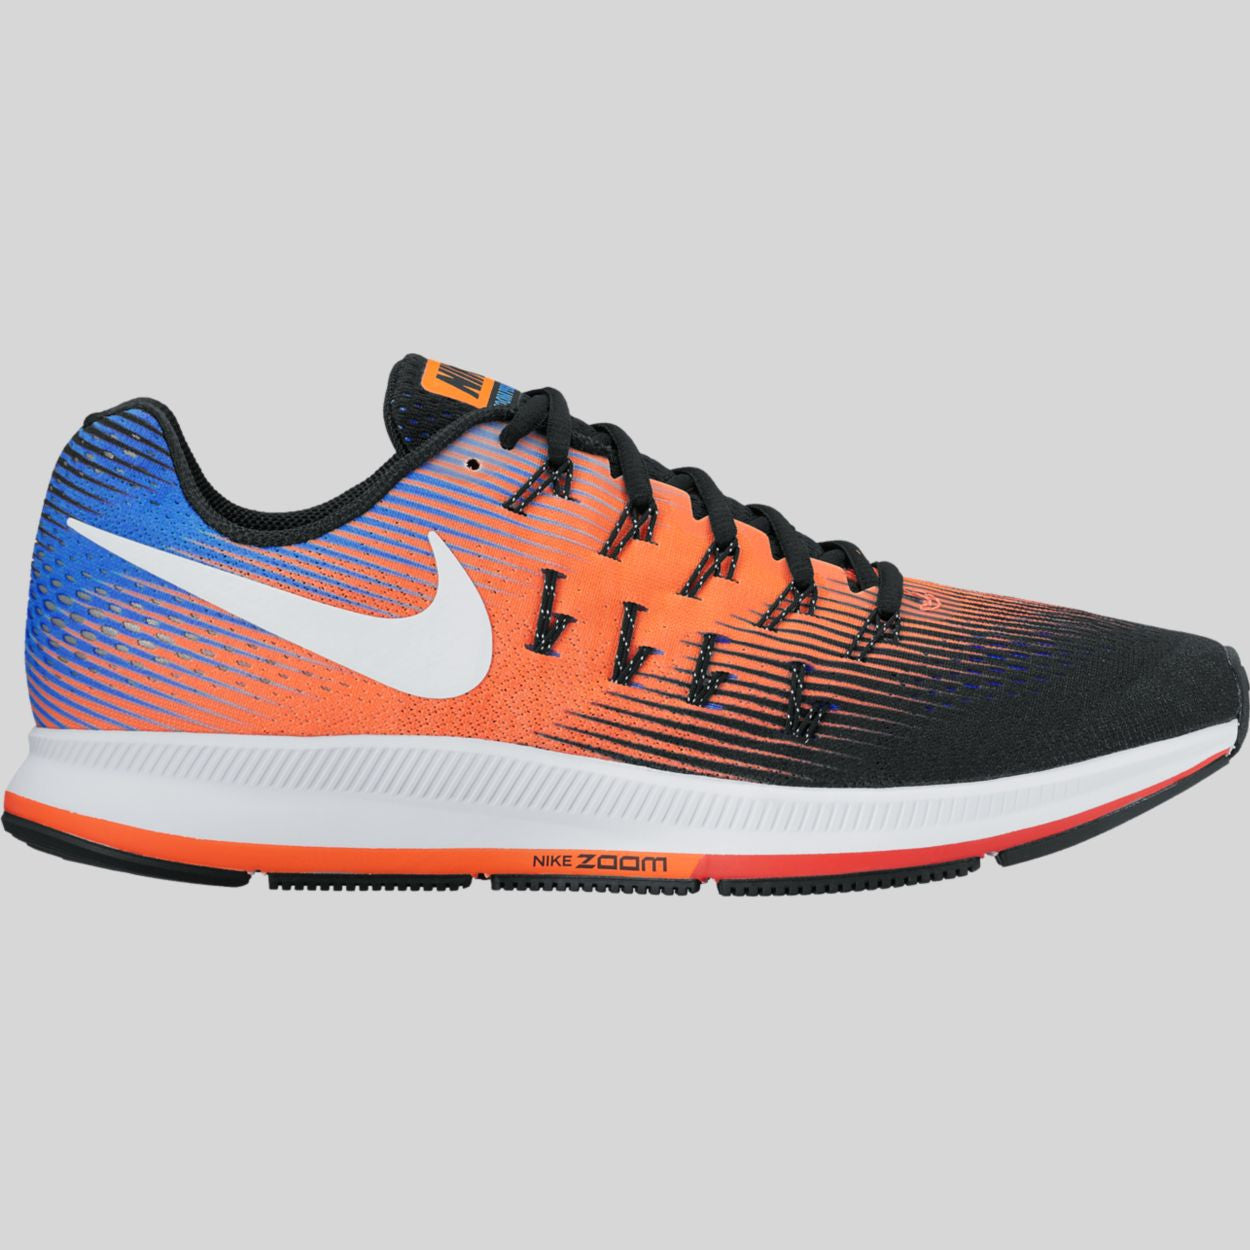 Nike Air Zoom Pegasus 33 Black White Hyper Orange Paramount Blue  (831352-010)